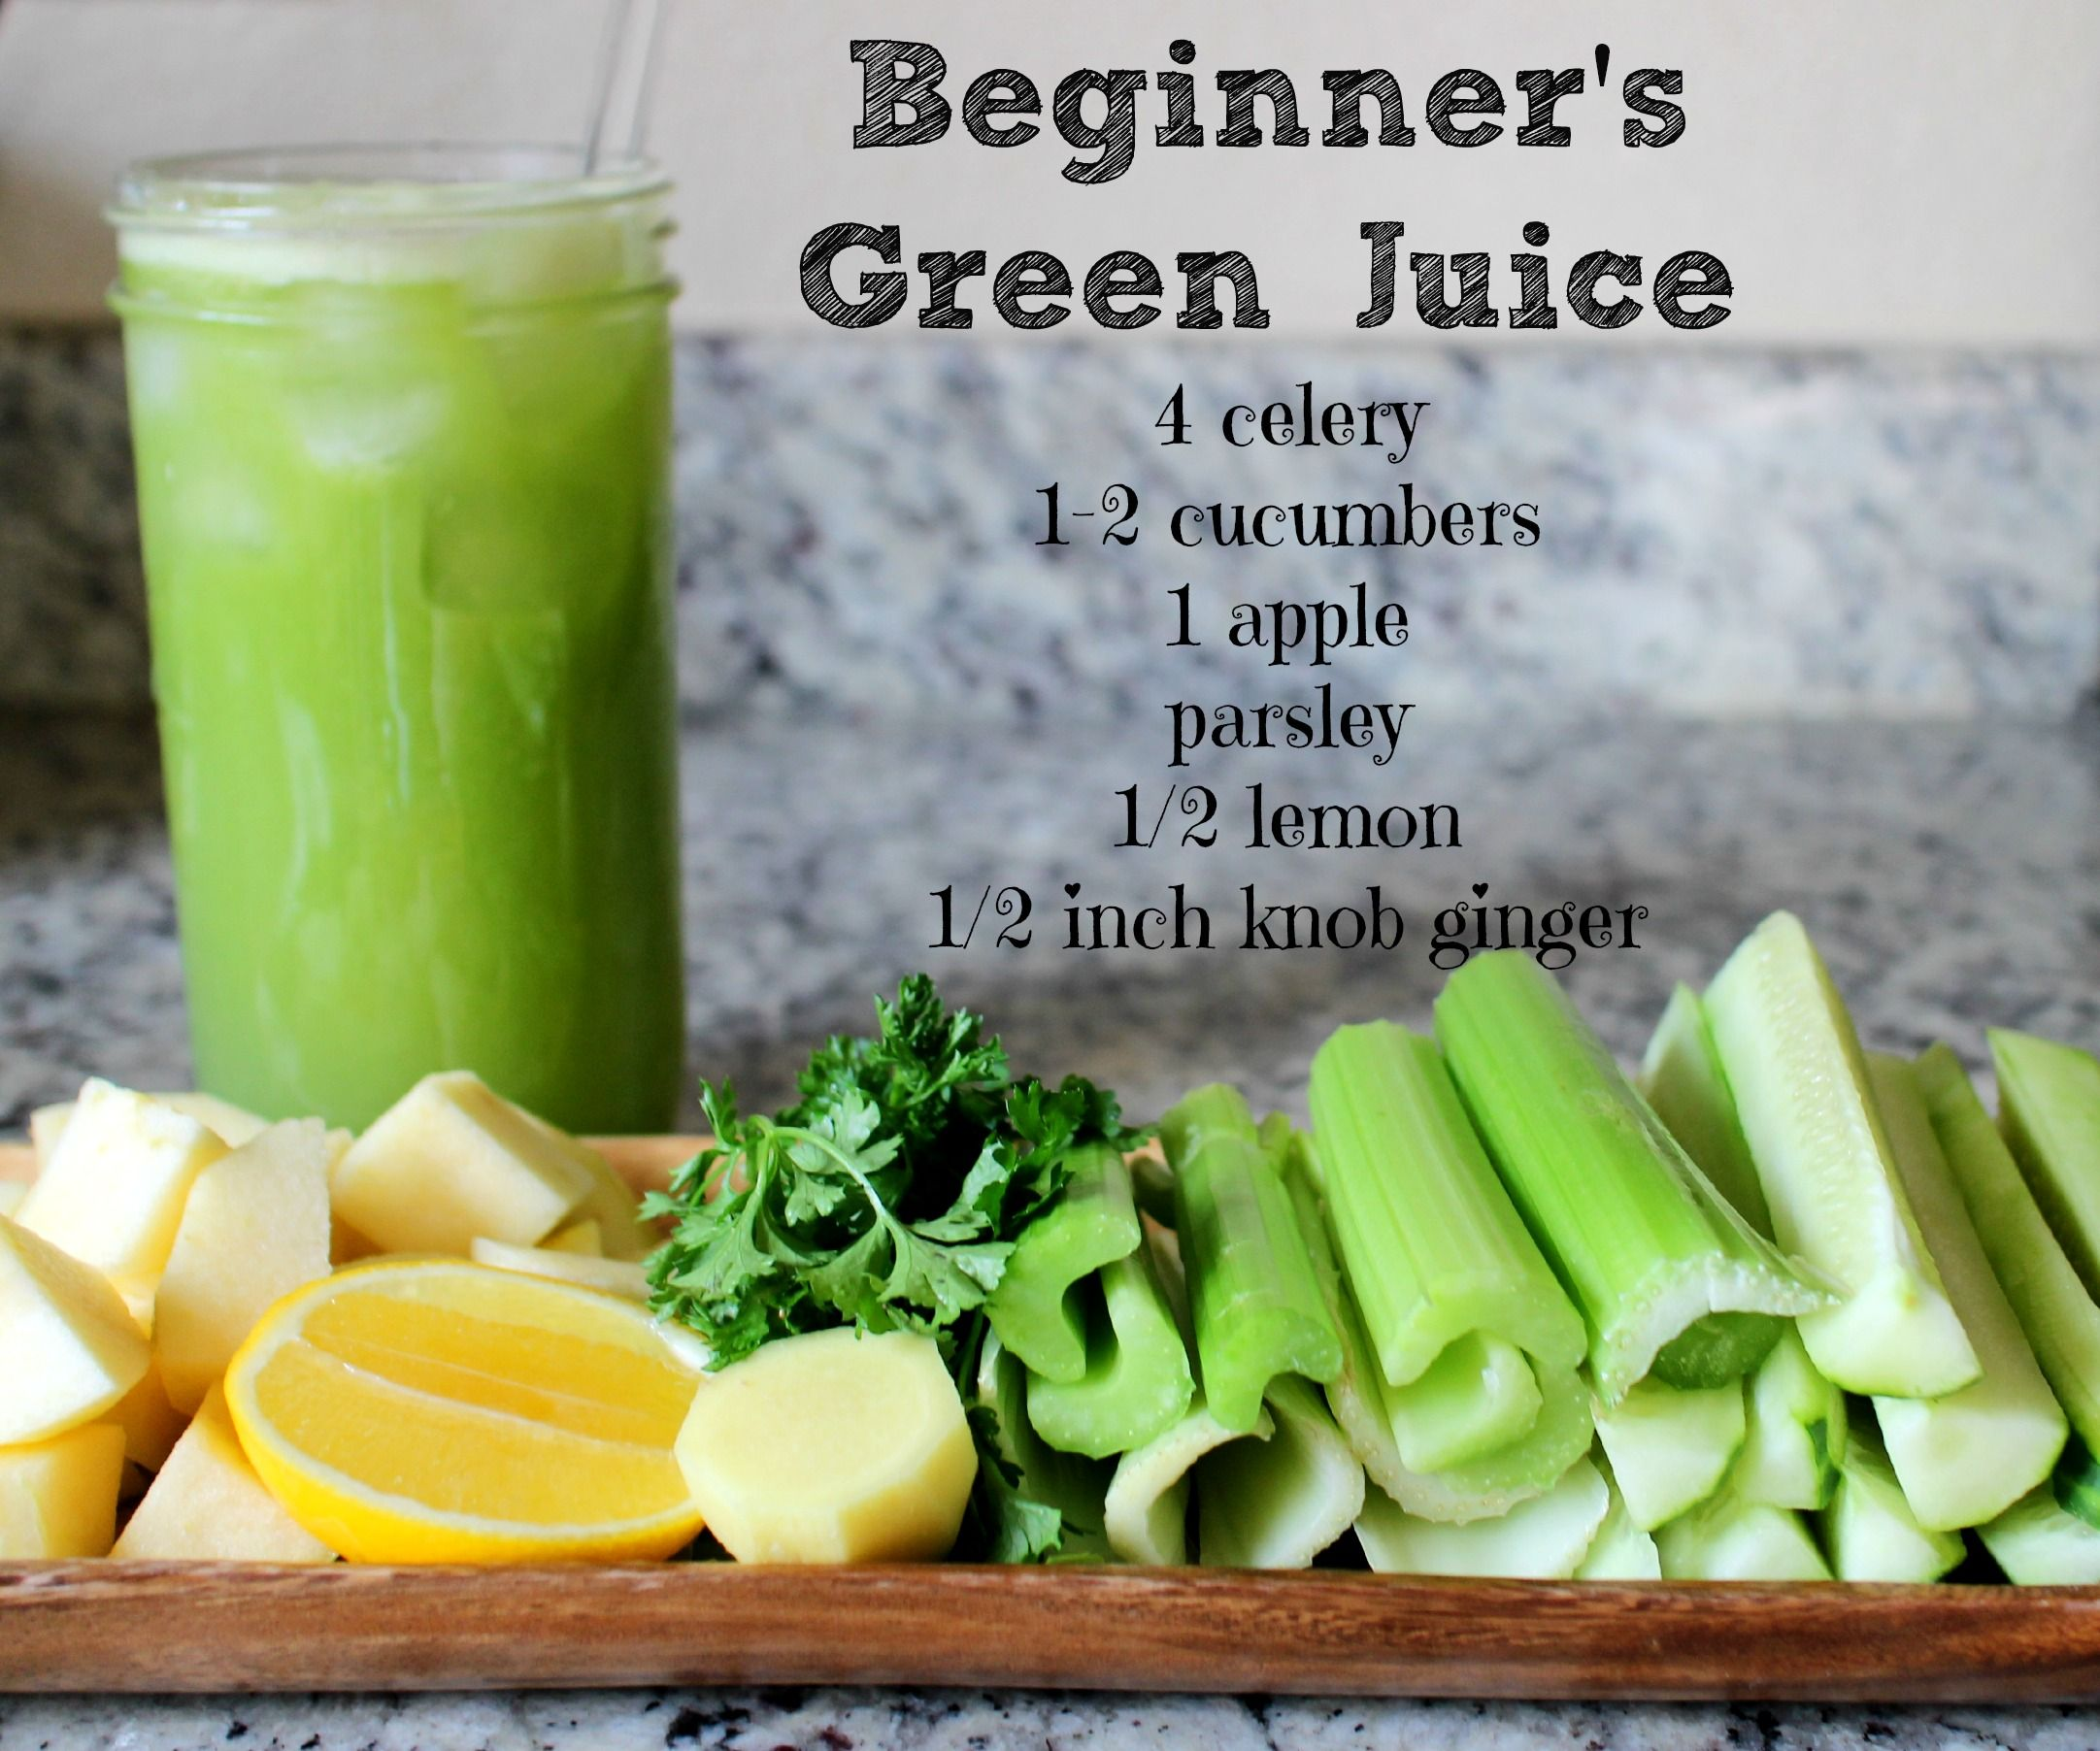 Slow Juicer Green Recipes : Green Juice Recipe for Beginners. Looks yummy and ...